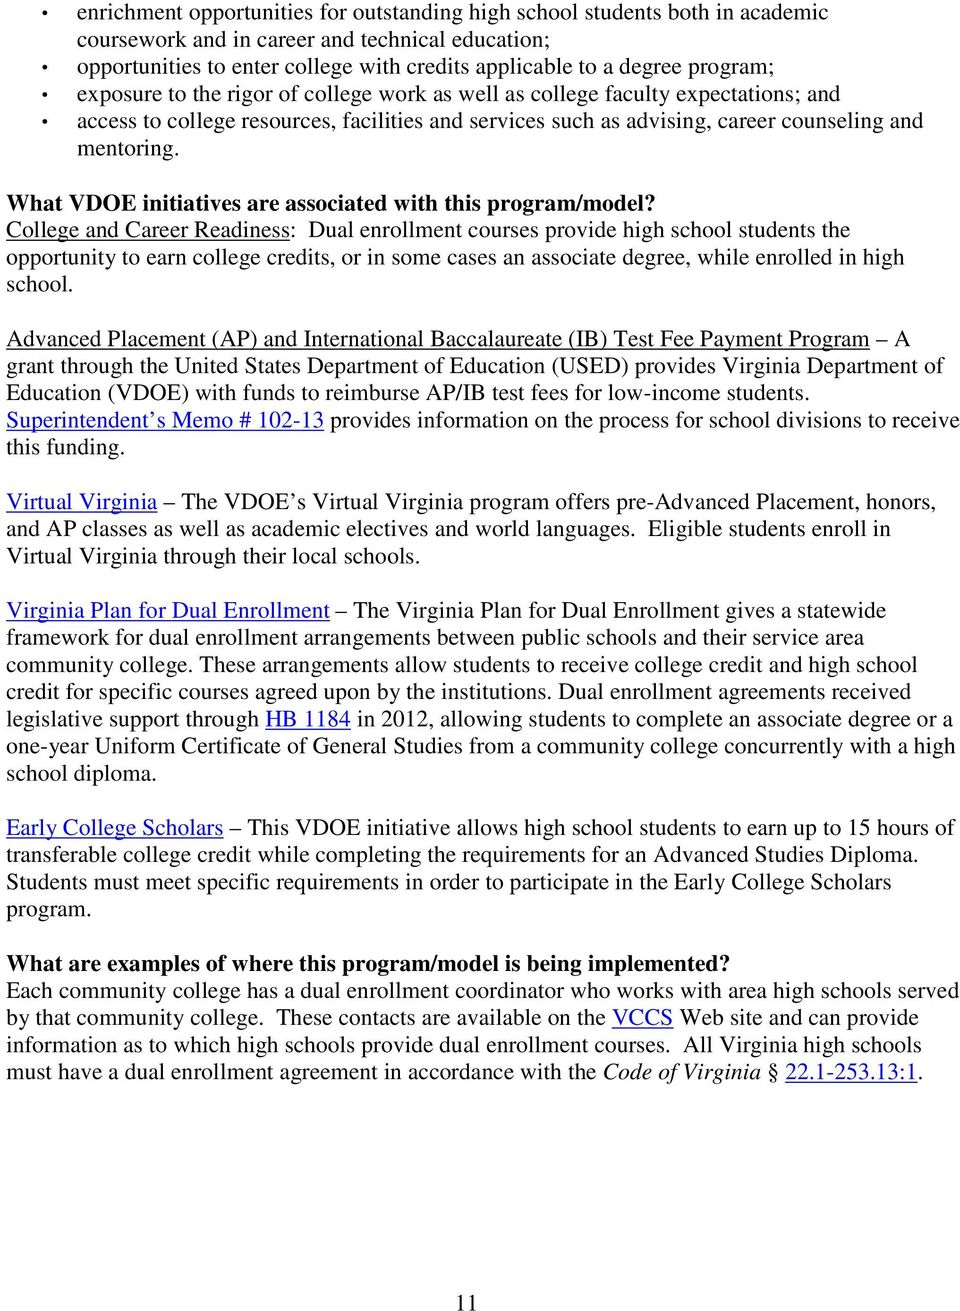 What VDOE initiatives are associated with this program/model?